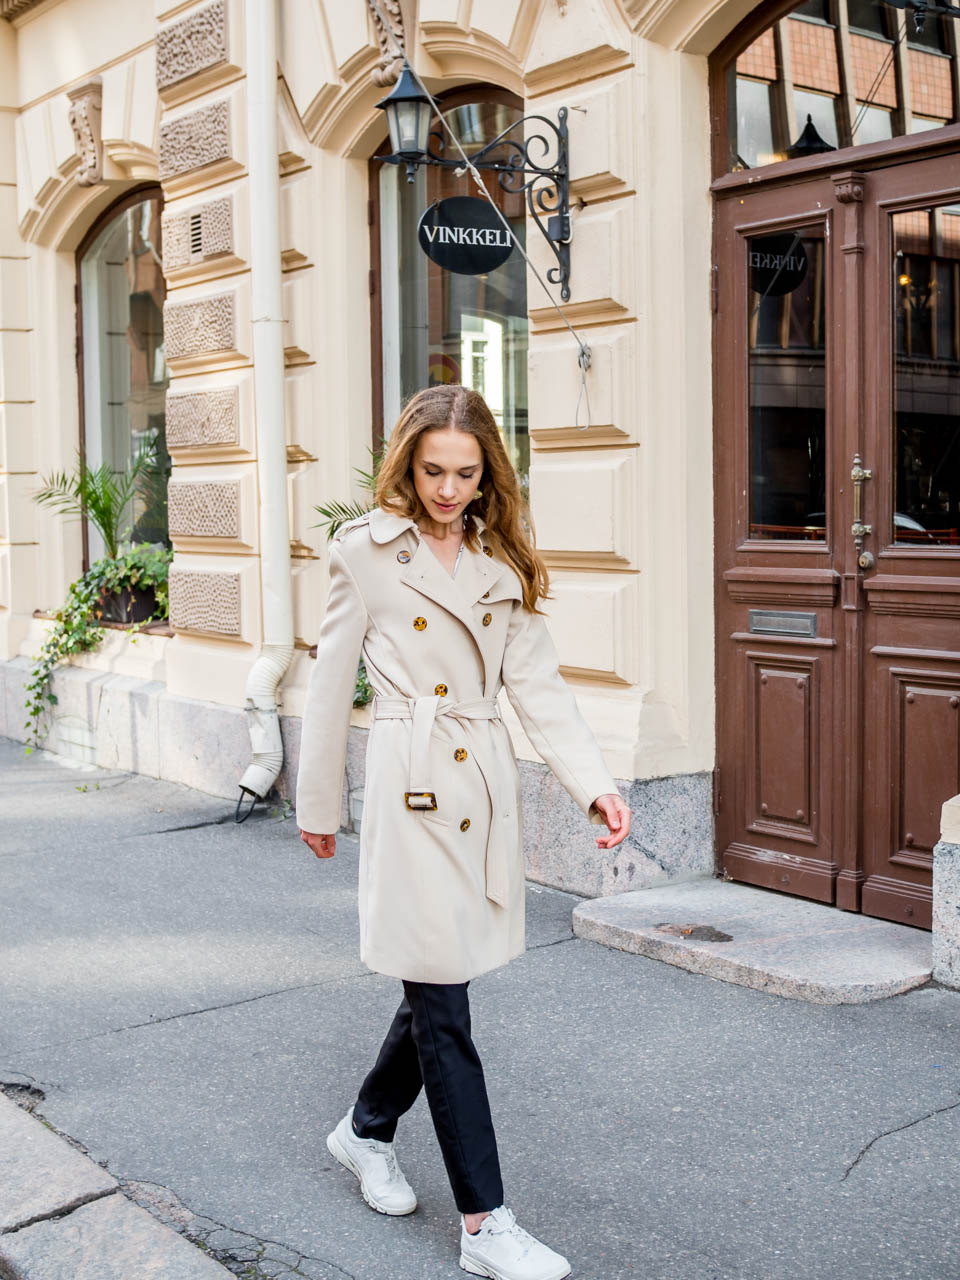 fashion-blogger-streetstyle-helsinki-scandinavia-minimal-chic-outfit-autumn-trench-coat